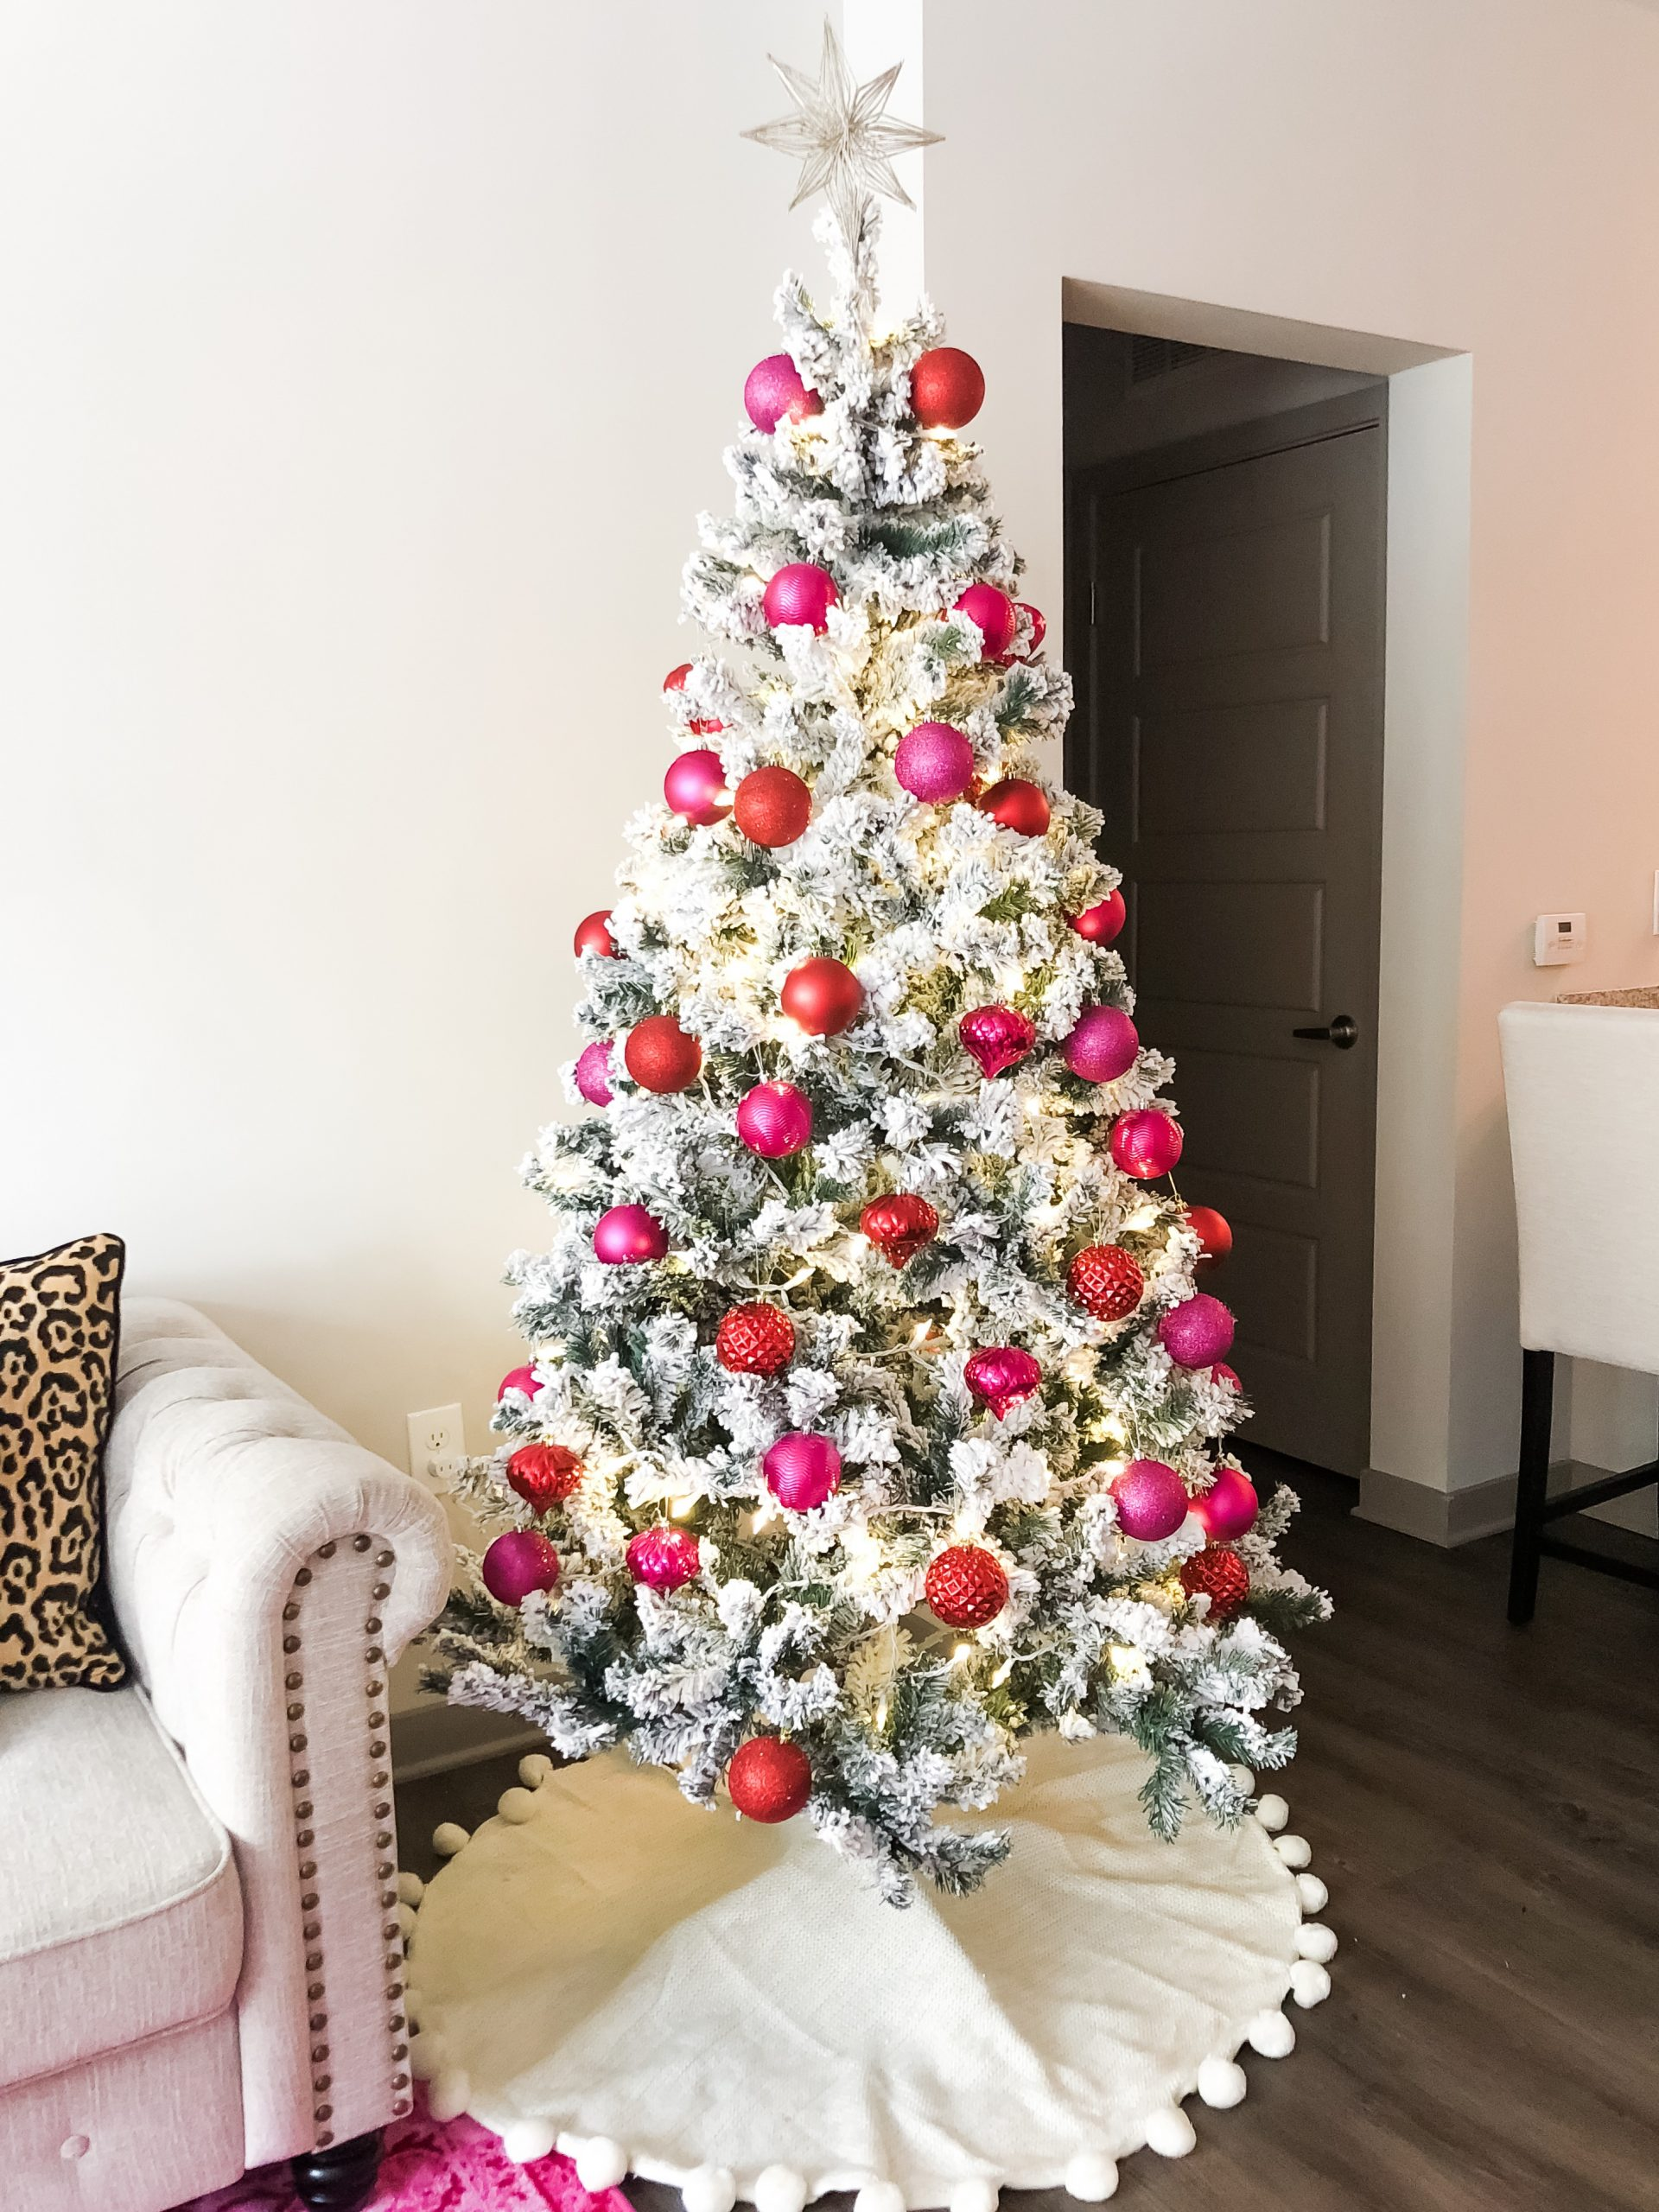 RED + PINK CHRISTMAS DECOR